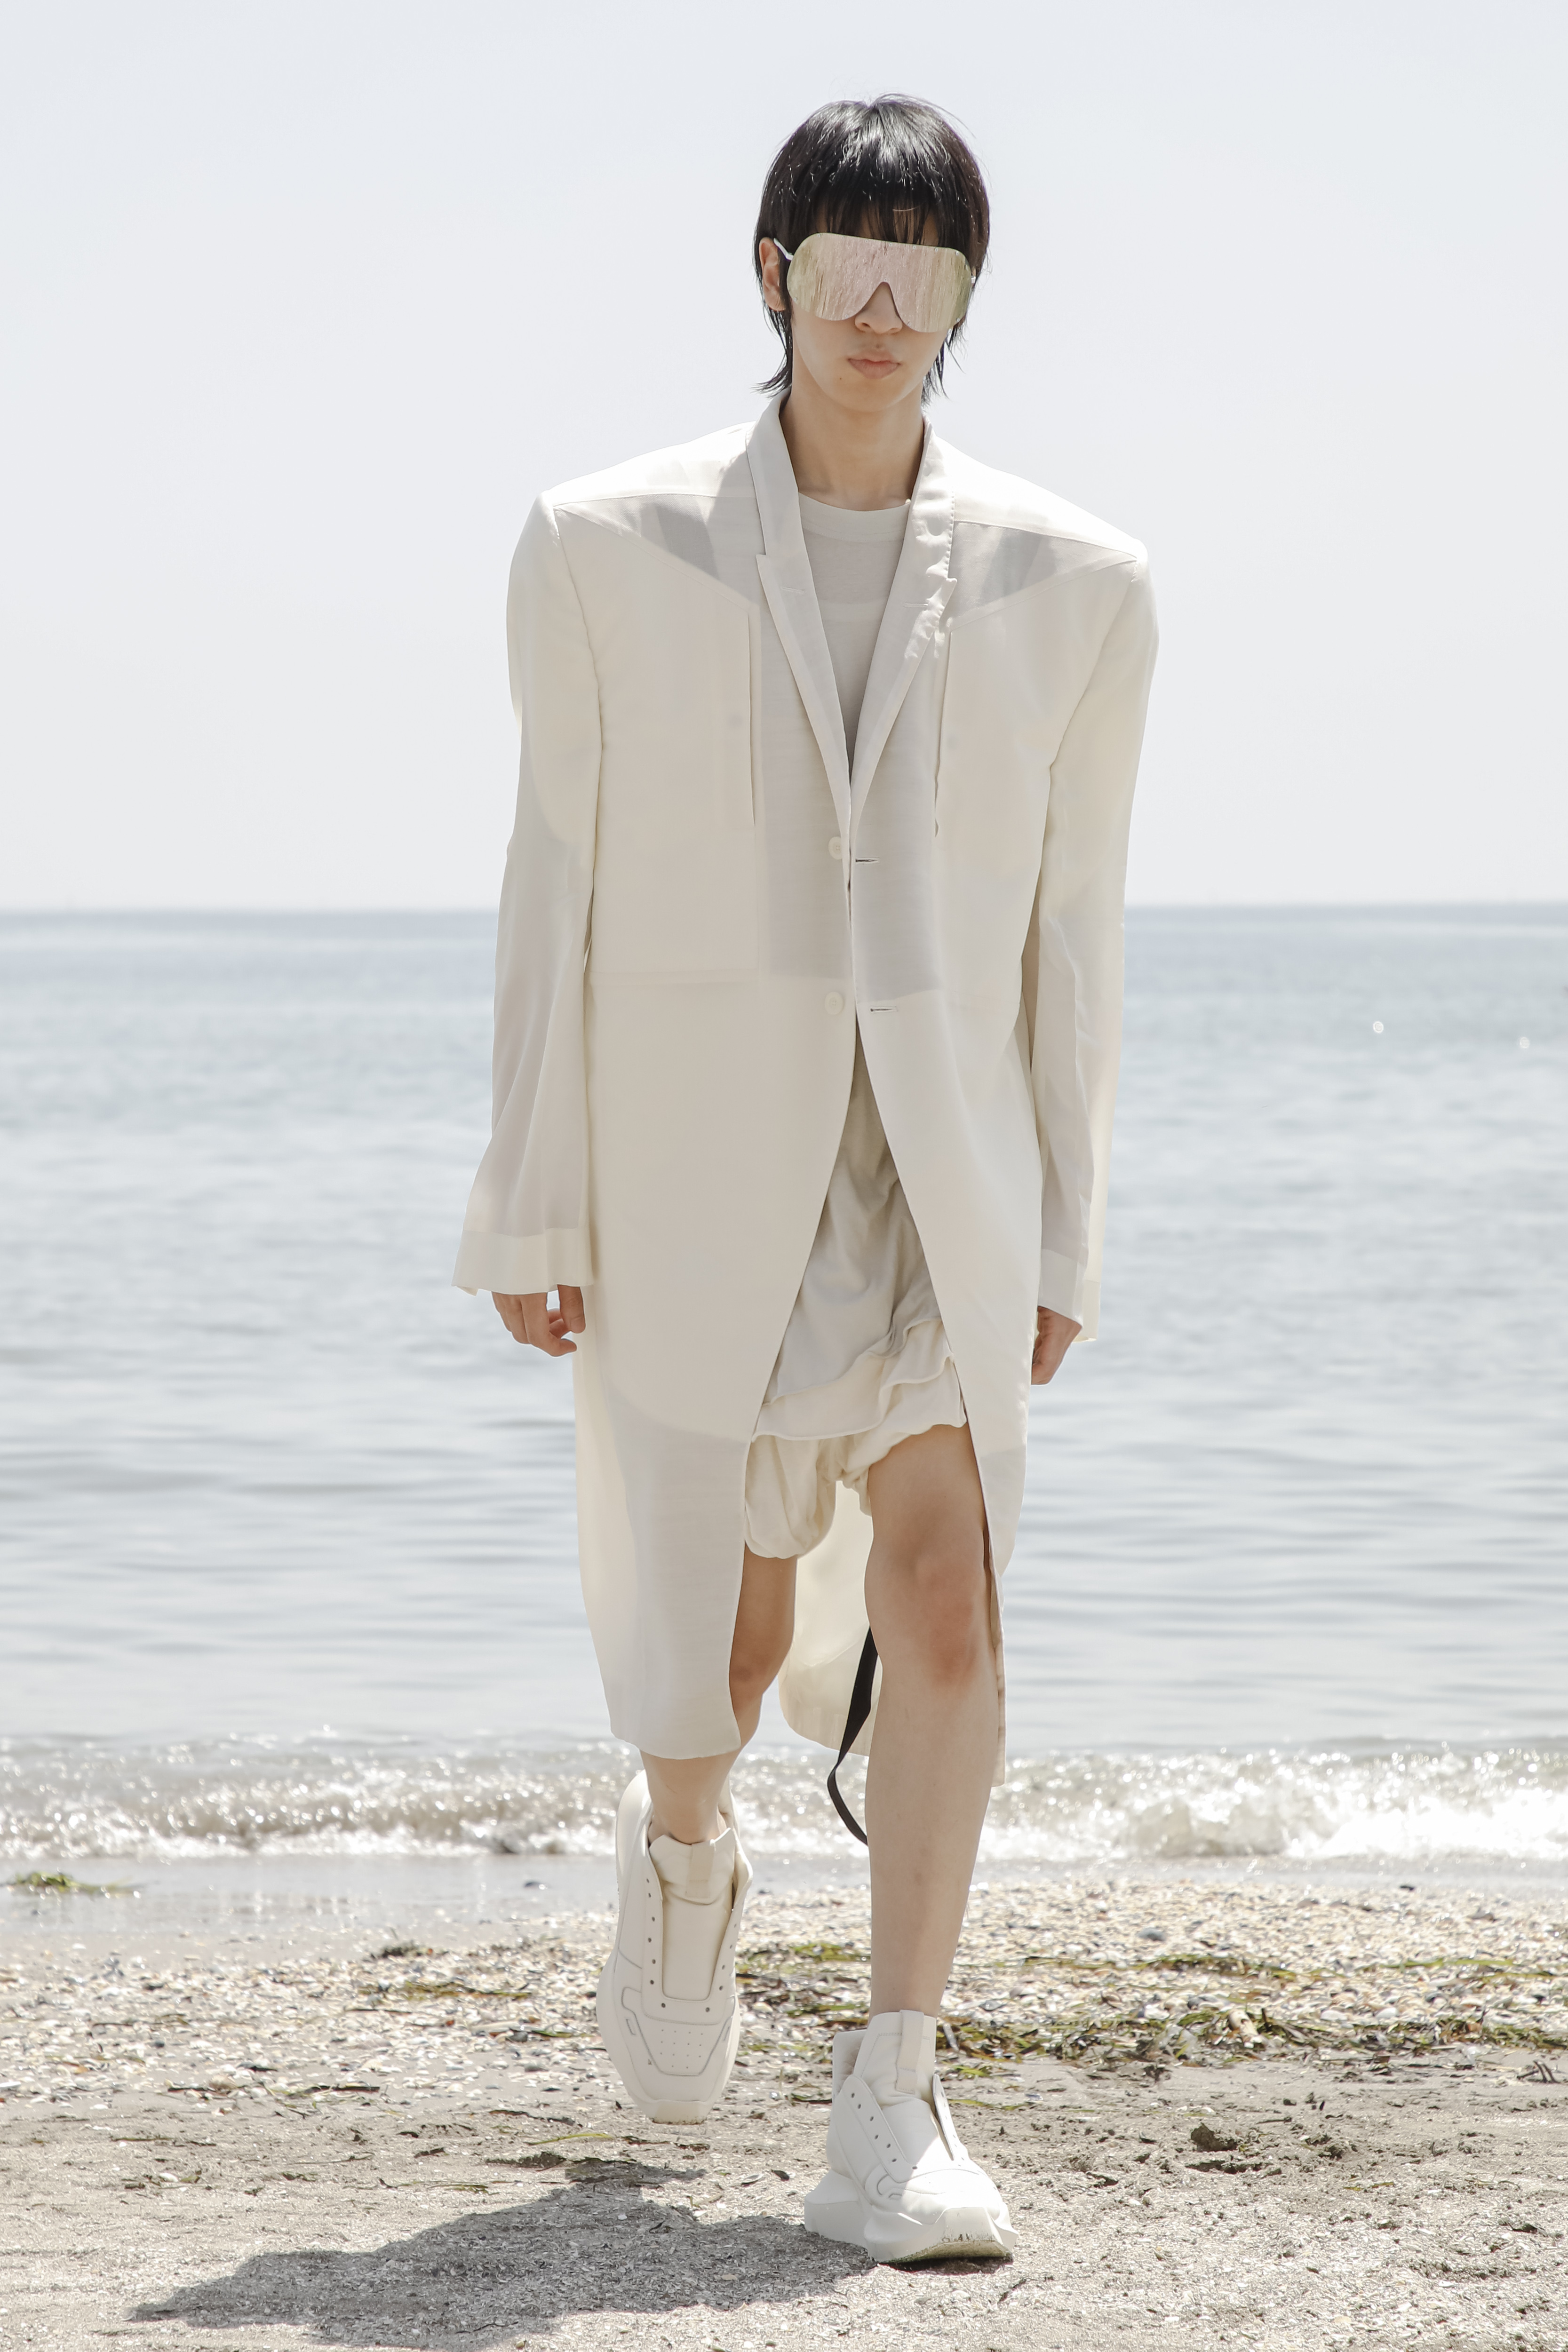 A model wearing a full look from the Rick Owens S22 collection